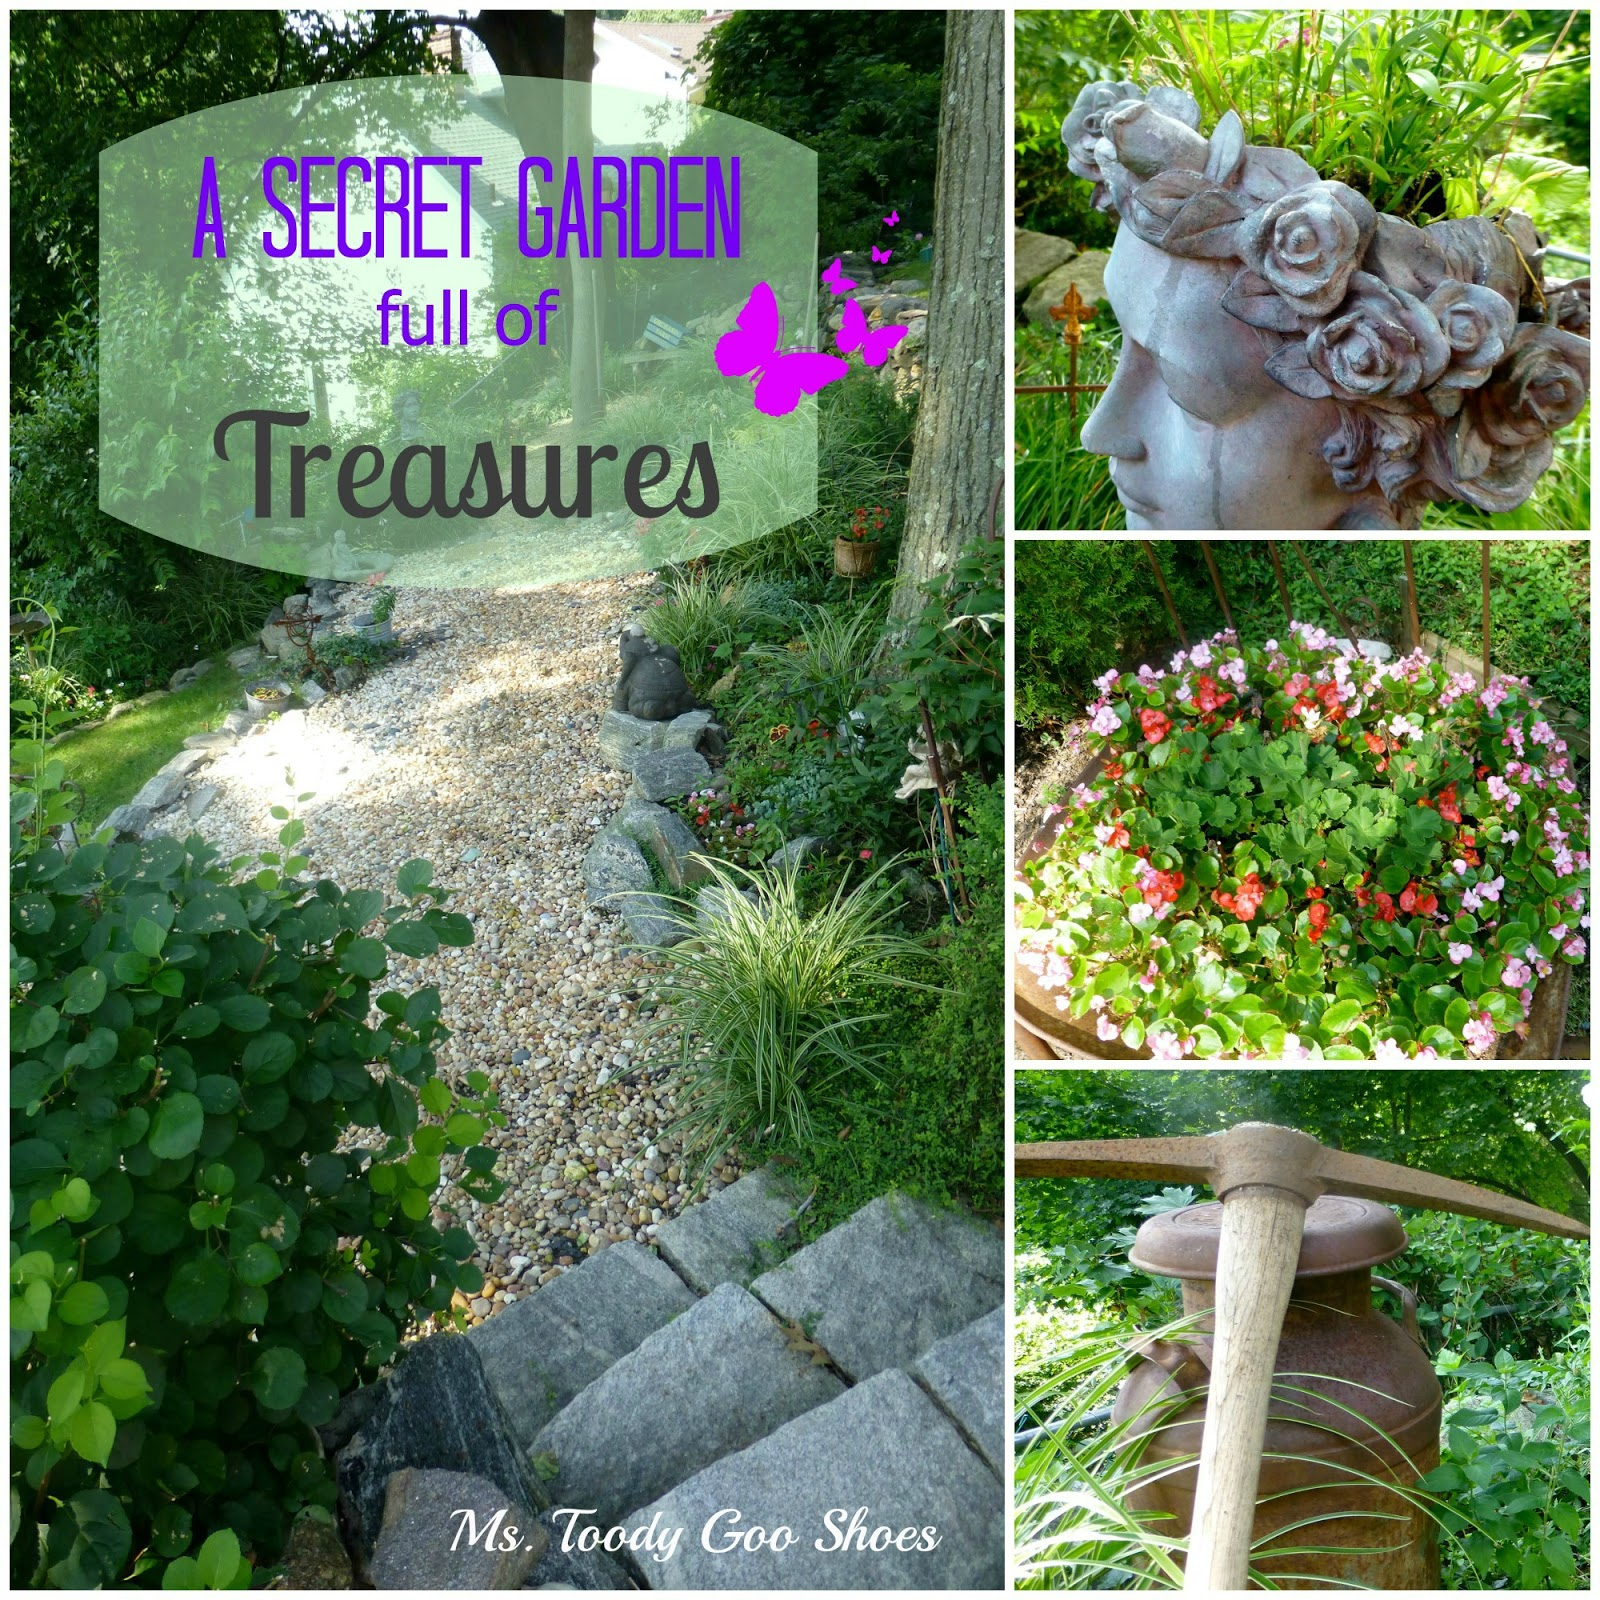 A Secret Garden of Treasures by Ms. Toody Goo Shoes